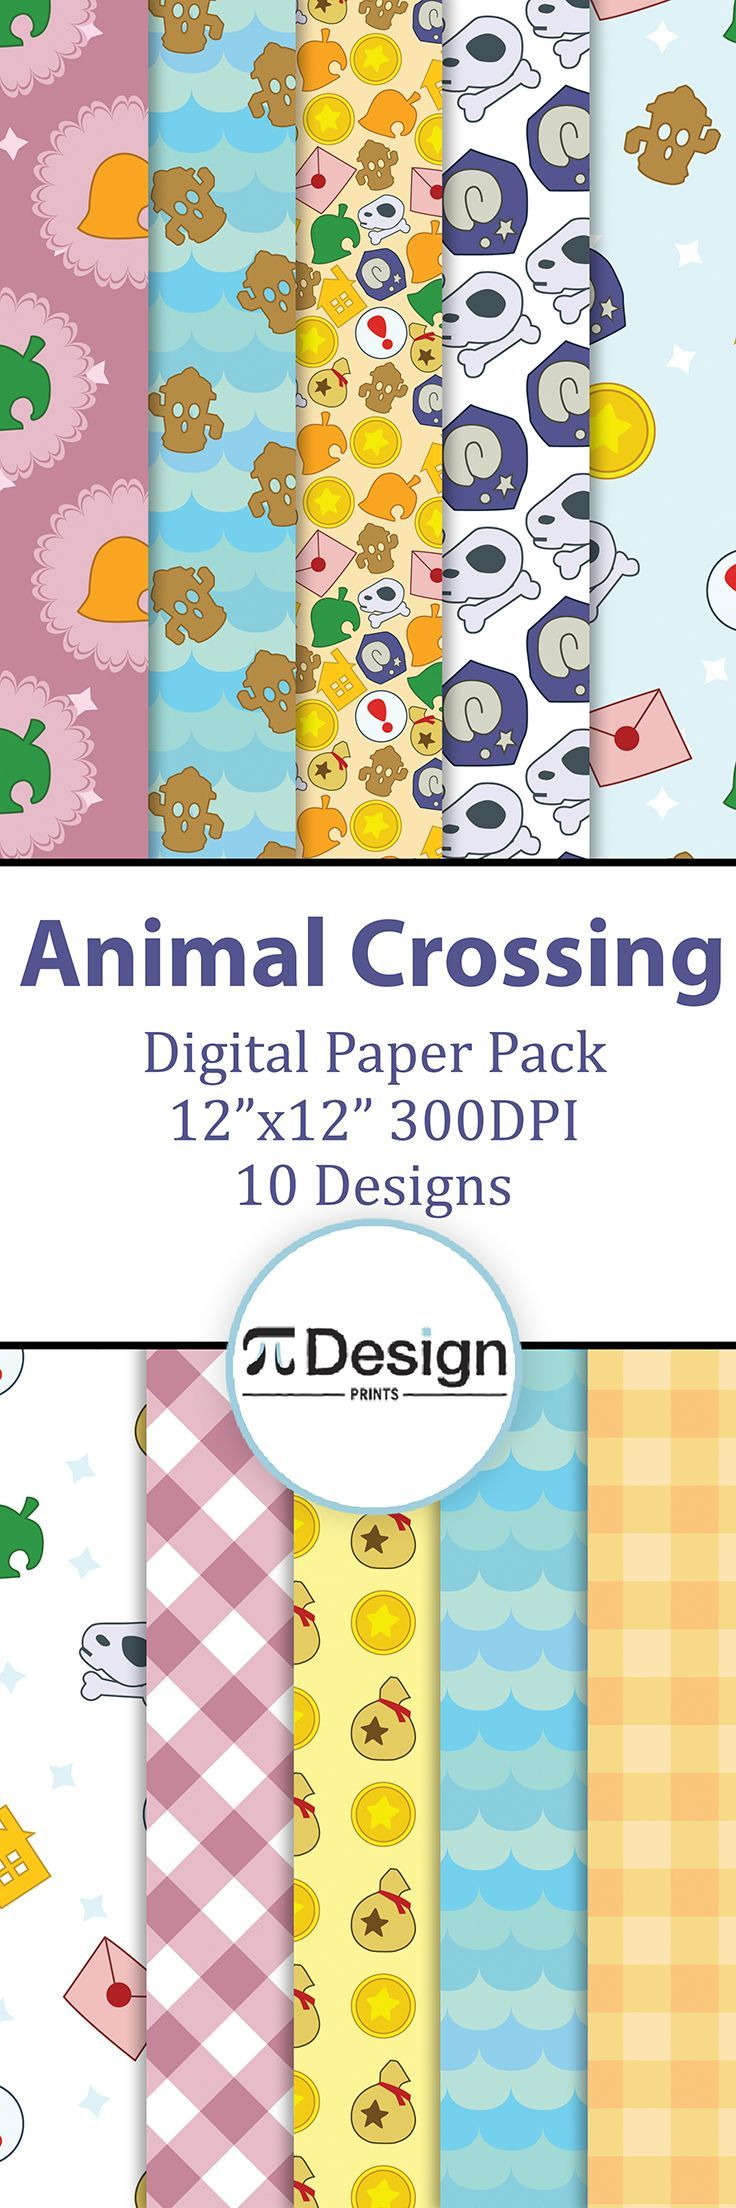 Scrapbook ideas video download - Have Fun With Your Animal Crossing Pals With This Digital Paper Pack Perfect For Scrapbooking